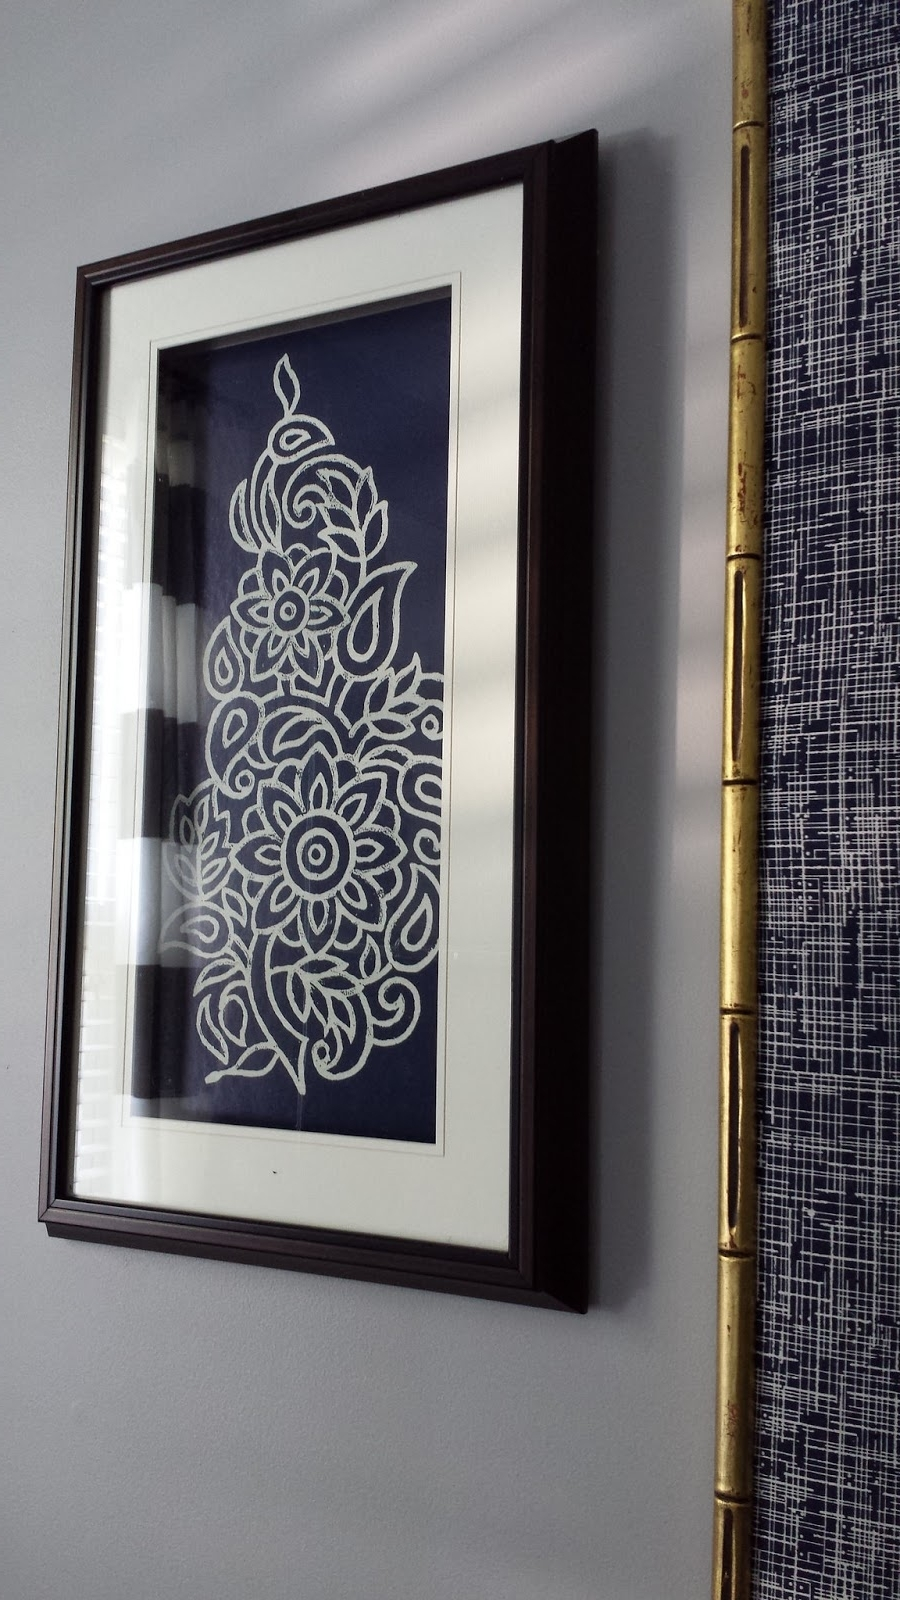 Popular Fabric Covered Frames Wall Art In Focal Point Styling: Diy Indigo Wall Art With Framed Fabric (View 14 of 15)